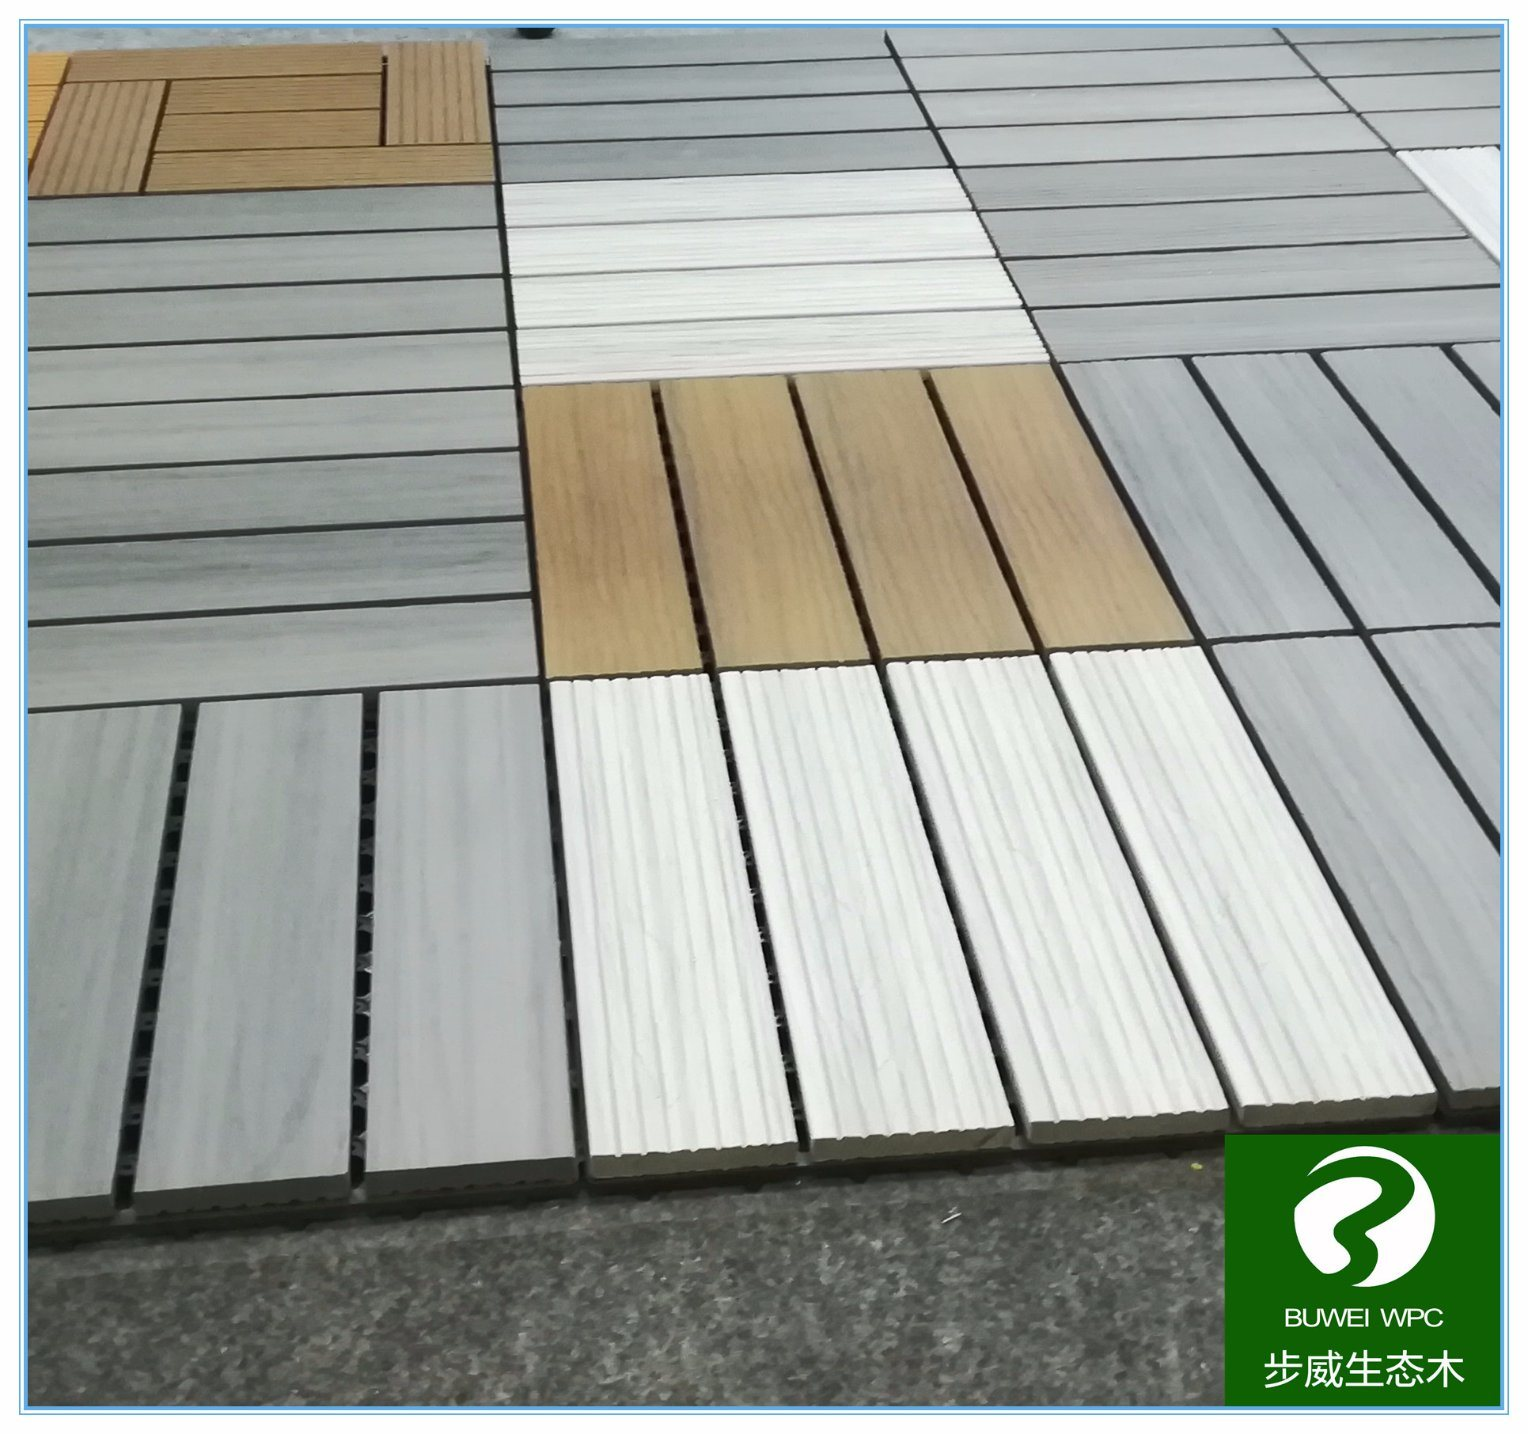 China Outdoor Easy Installation Wood Plastic Composite Floor Tile